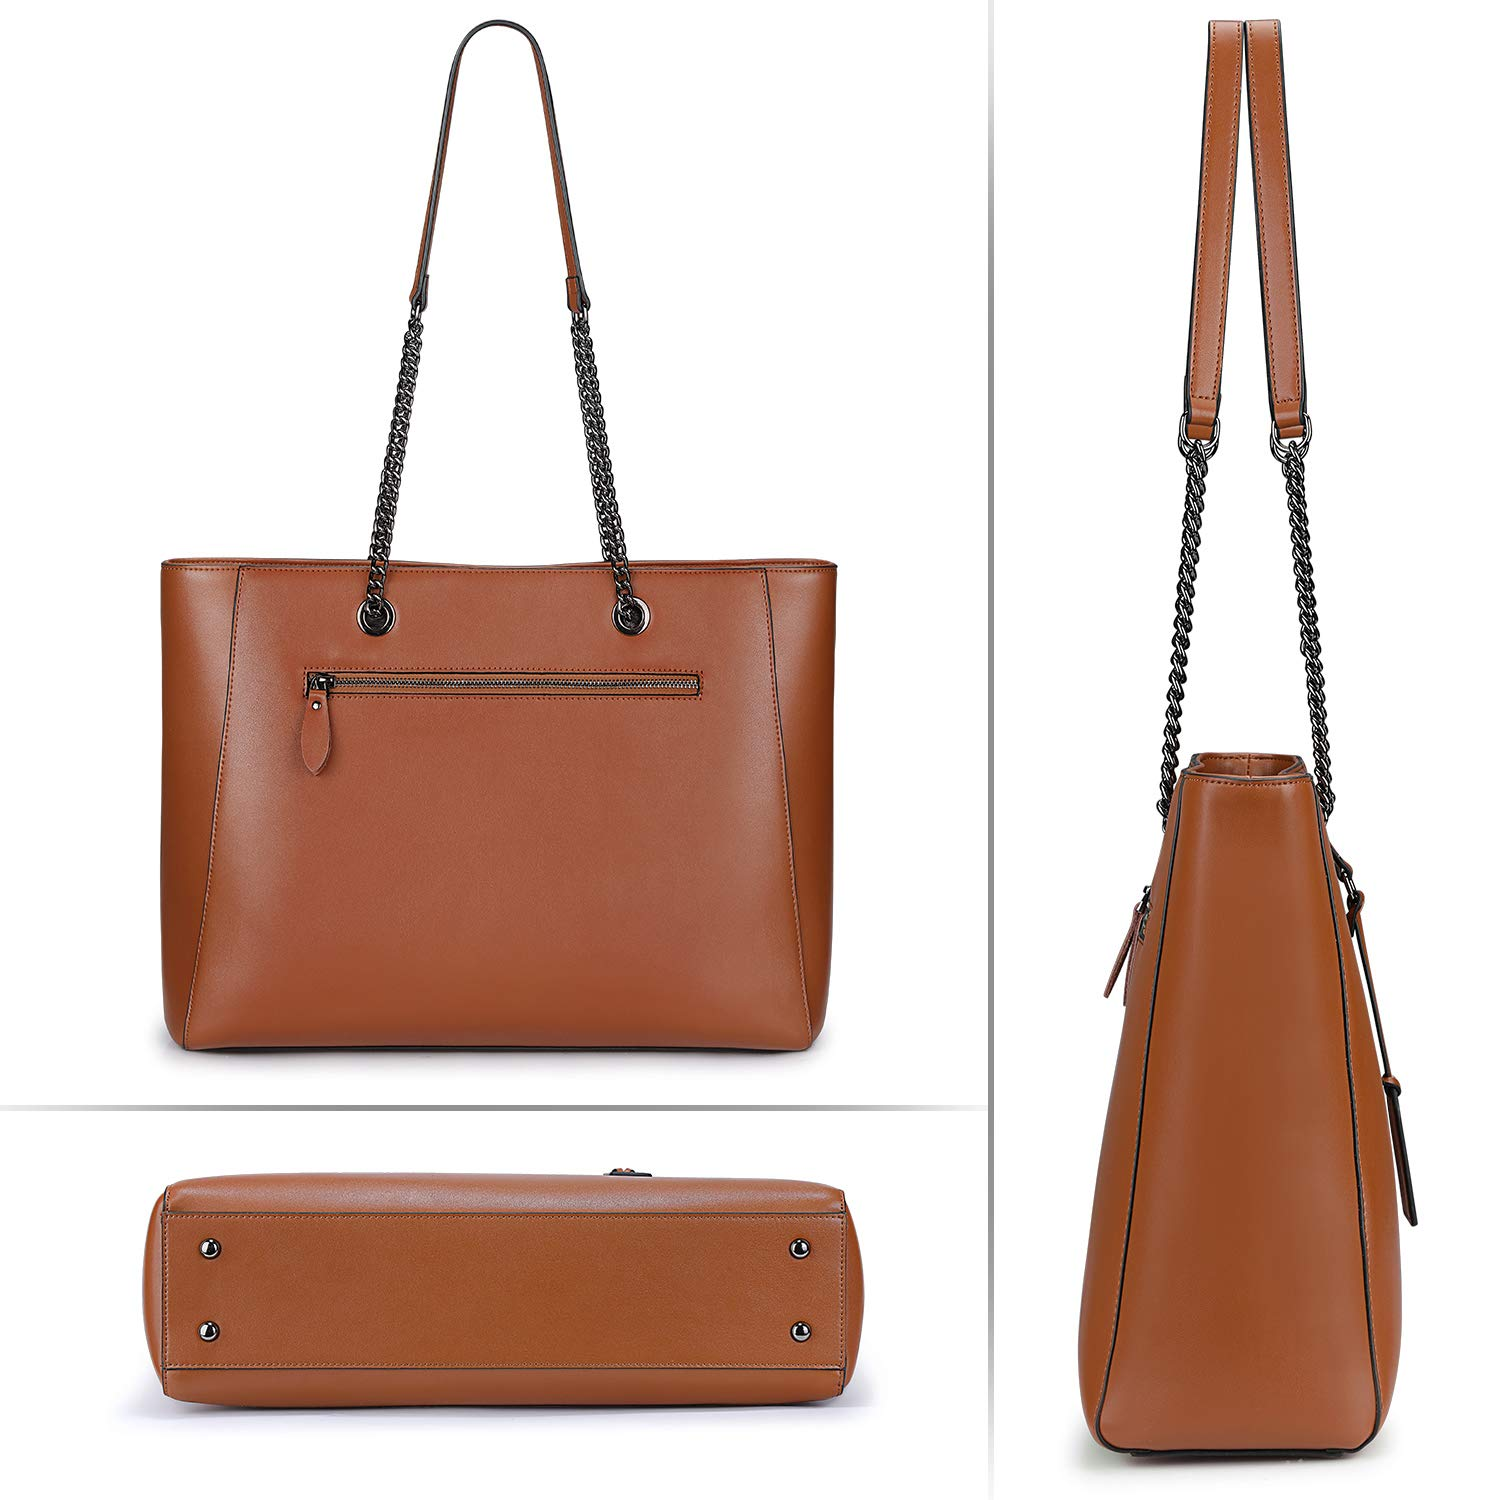 S-ZONE Women Leather Work Tote Bag Shoulder Bag Fit up to 15.6-inch Laptop S-ZONE D10V113A